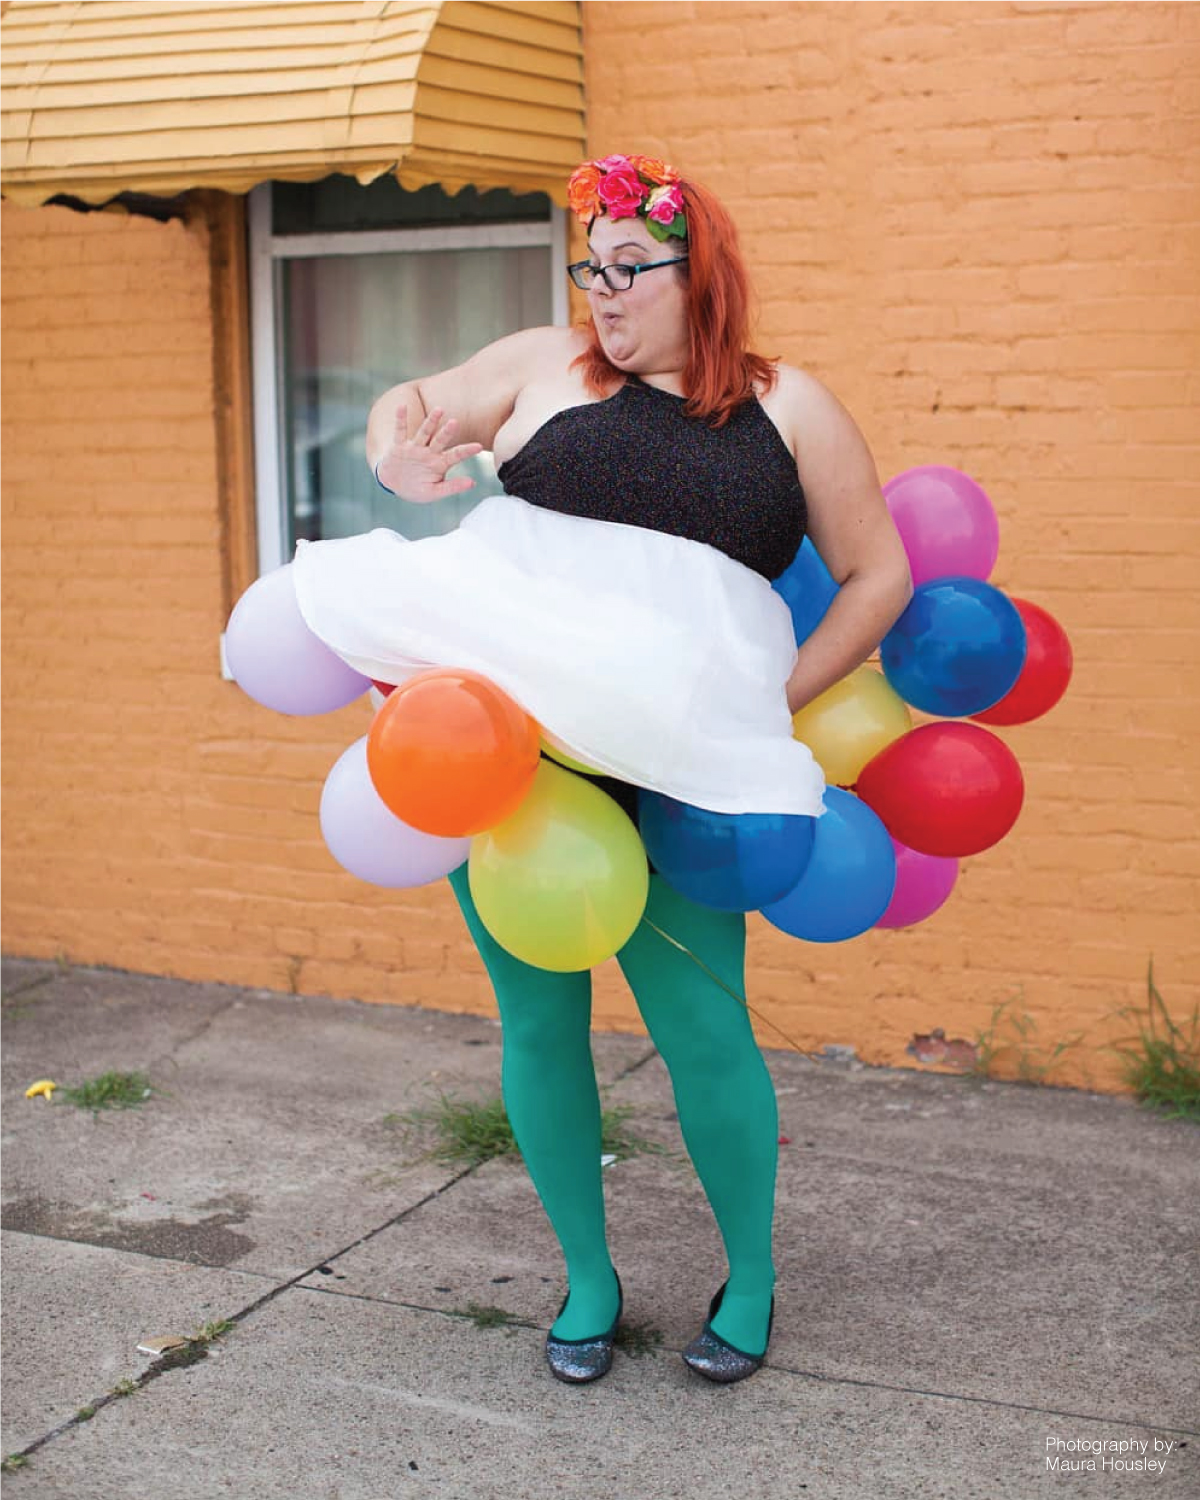 plus size woman standing on the street wearing a balloon skirt and green tights